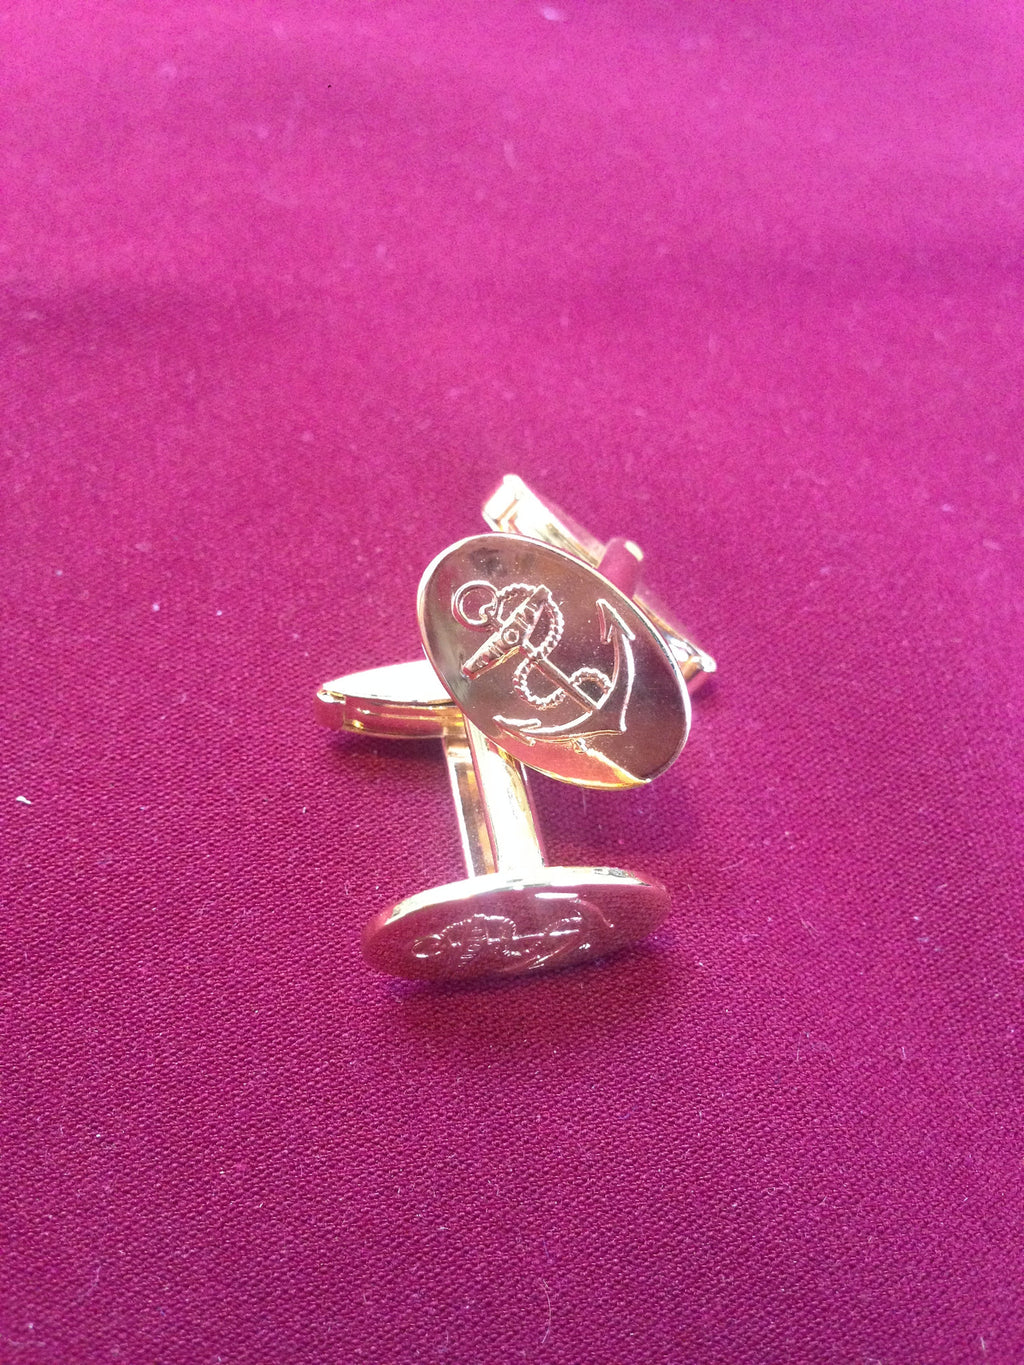 Naval Anchor Cufflinks